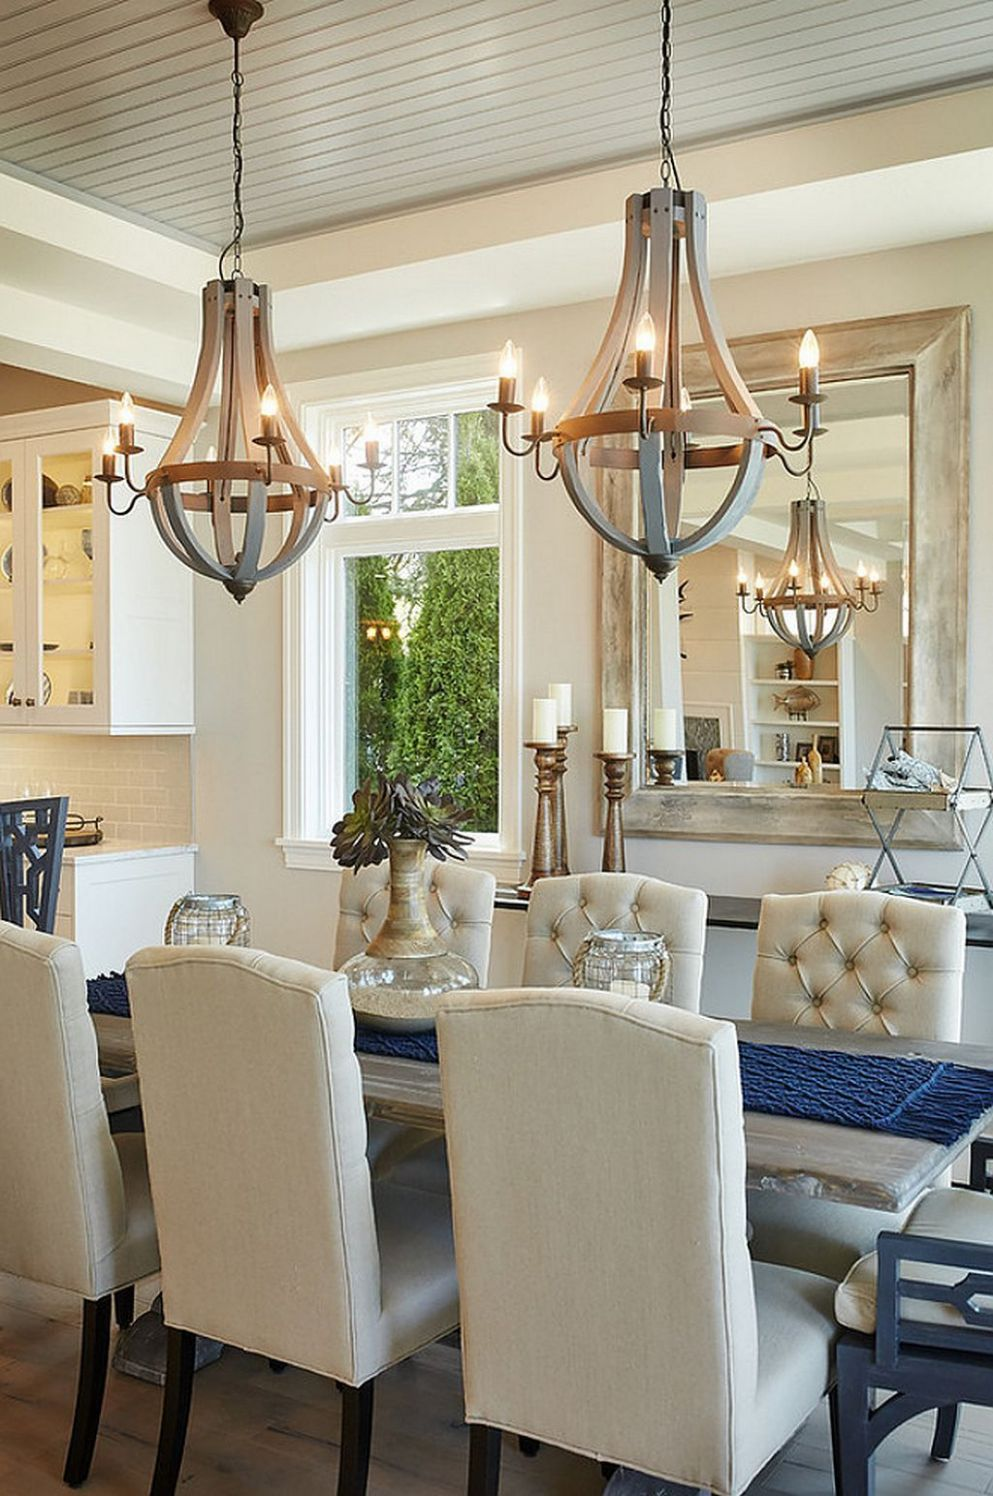 9 Dining Room Arrangement Ideas 9 | Dining room lighting, Dining ..